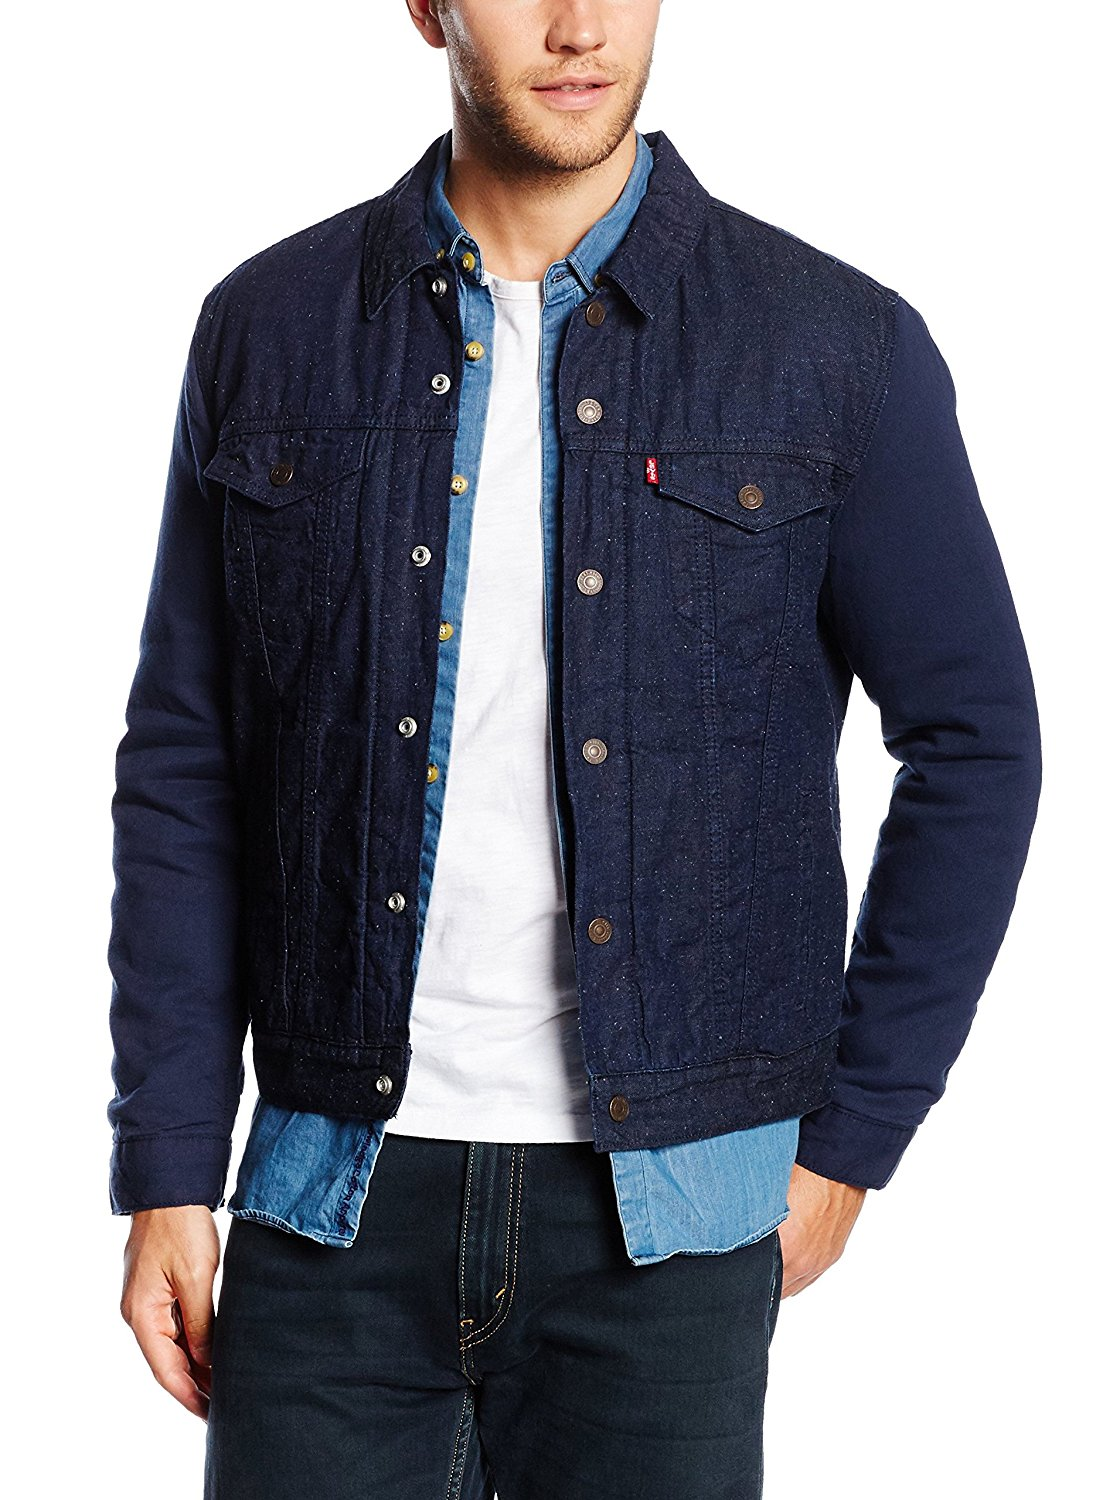 Levi's Men's Thermore Insulated Jacket Blue Denim 244630000